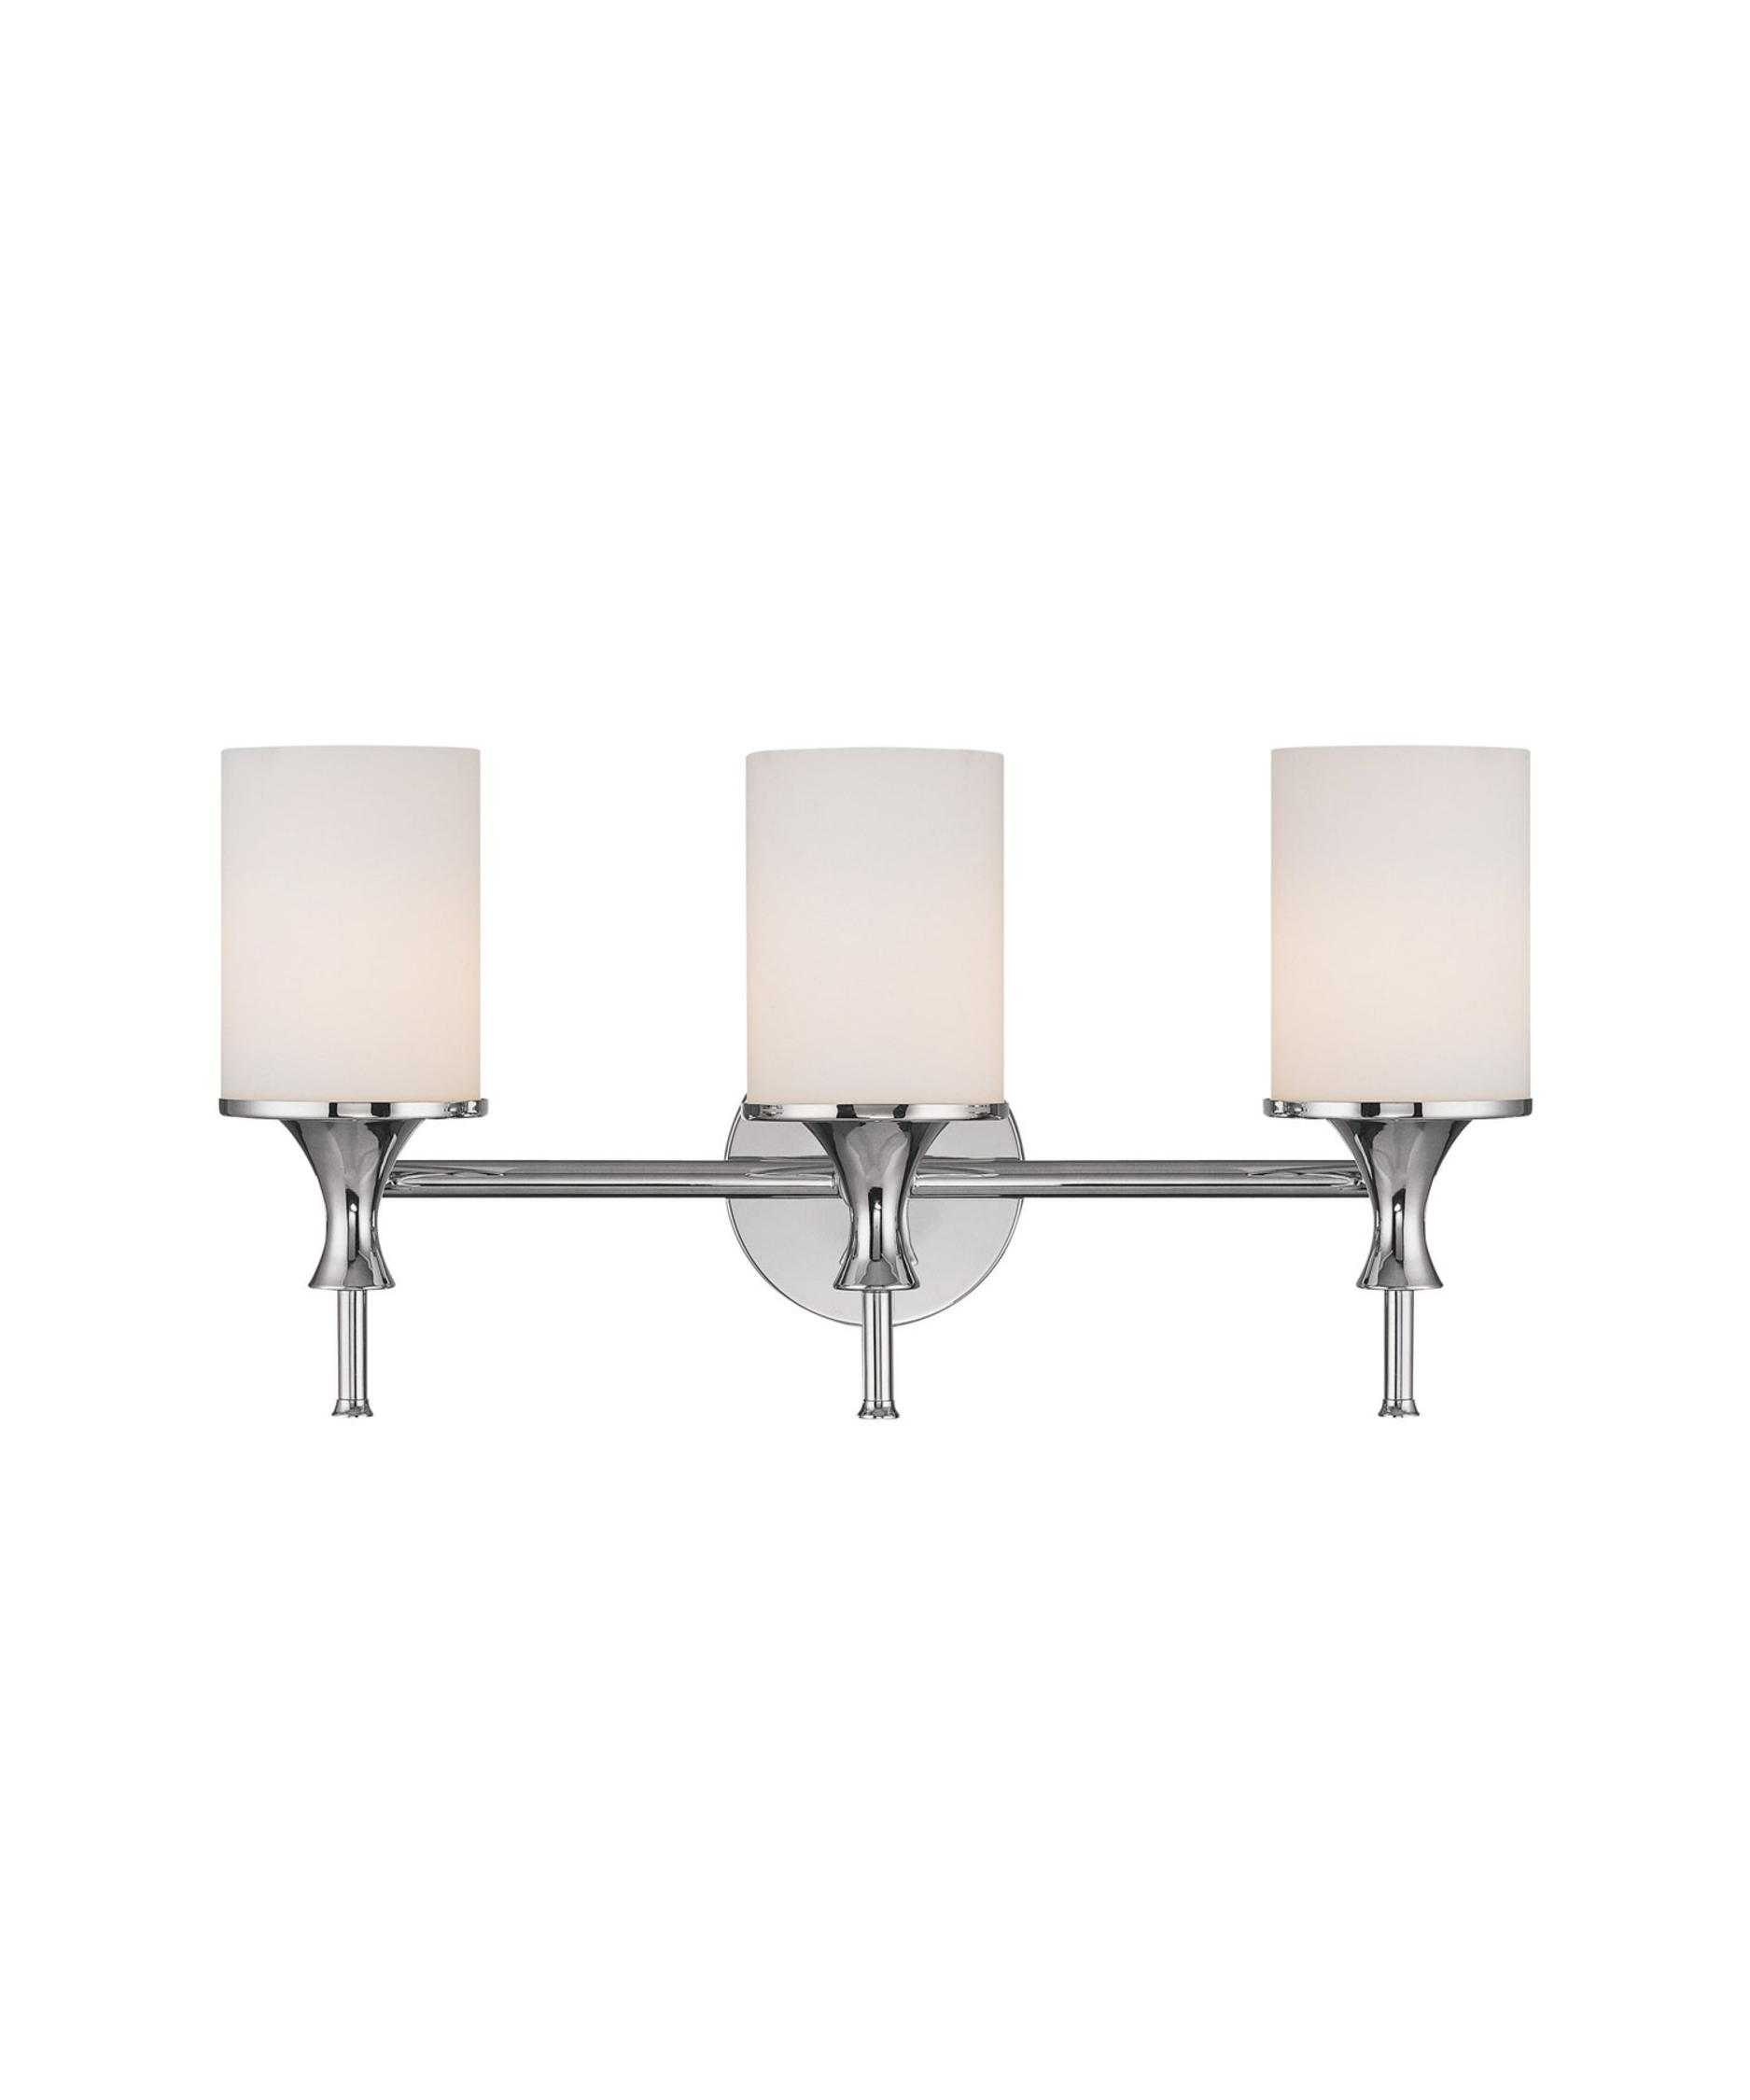 Bathroom Vanity Lights Polished Nickel capital lighting 1398 studio 20 inch wide bath vanity light